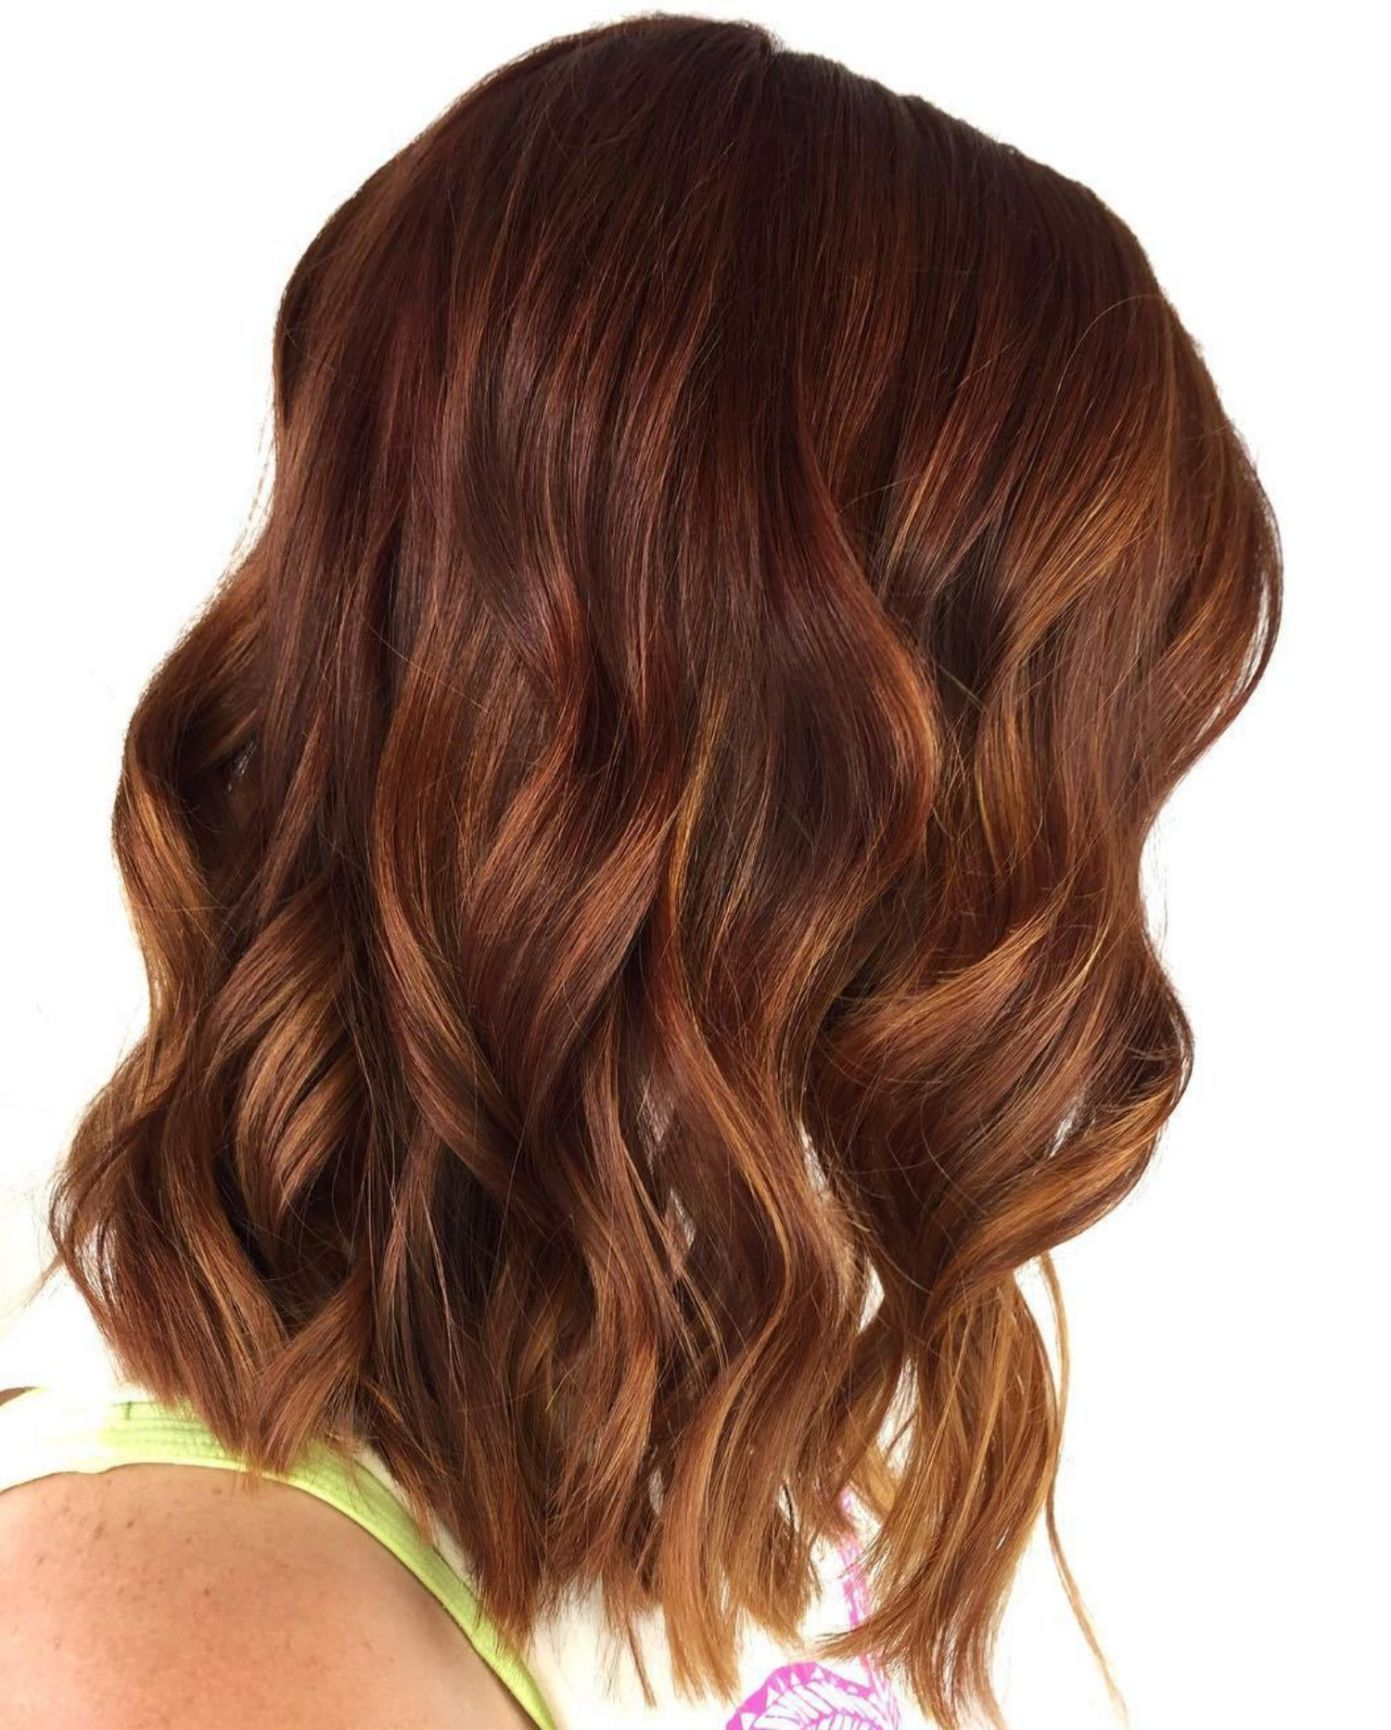 Auburn Hair Colors to Emphasize Your Individuality in Now